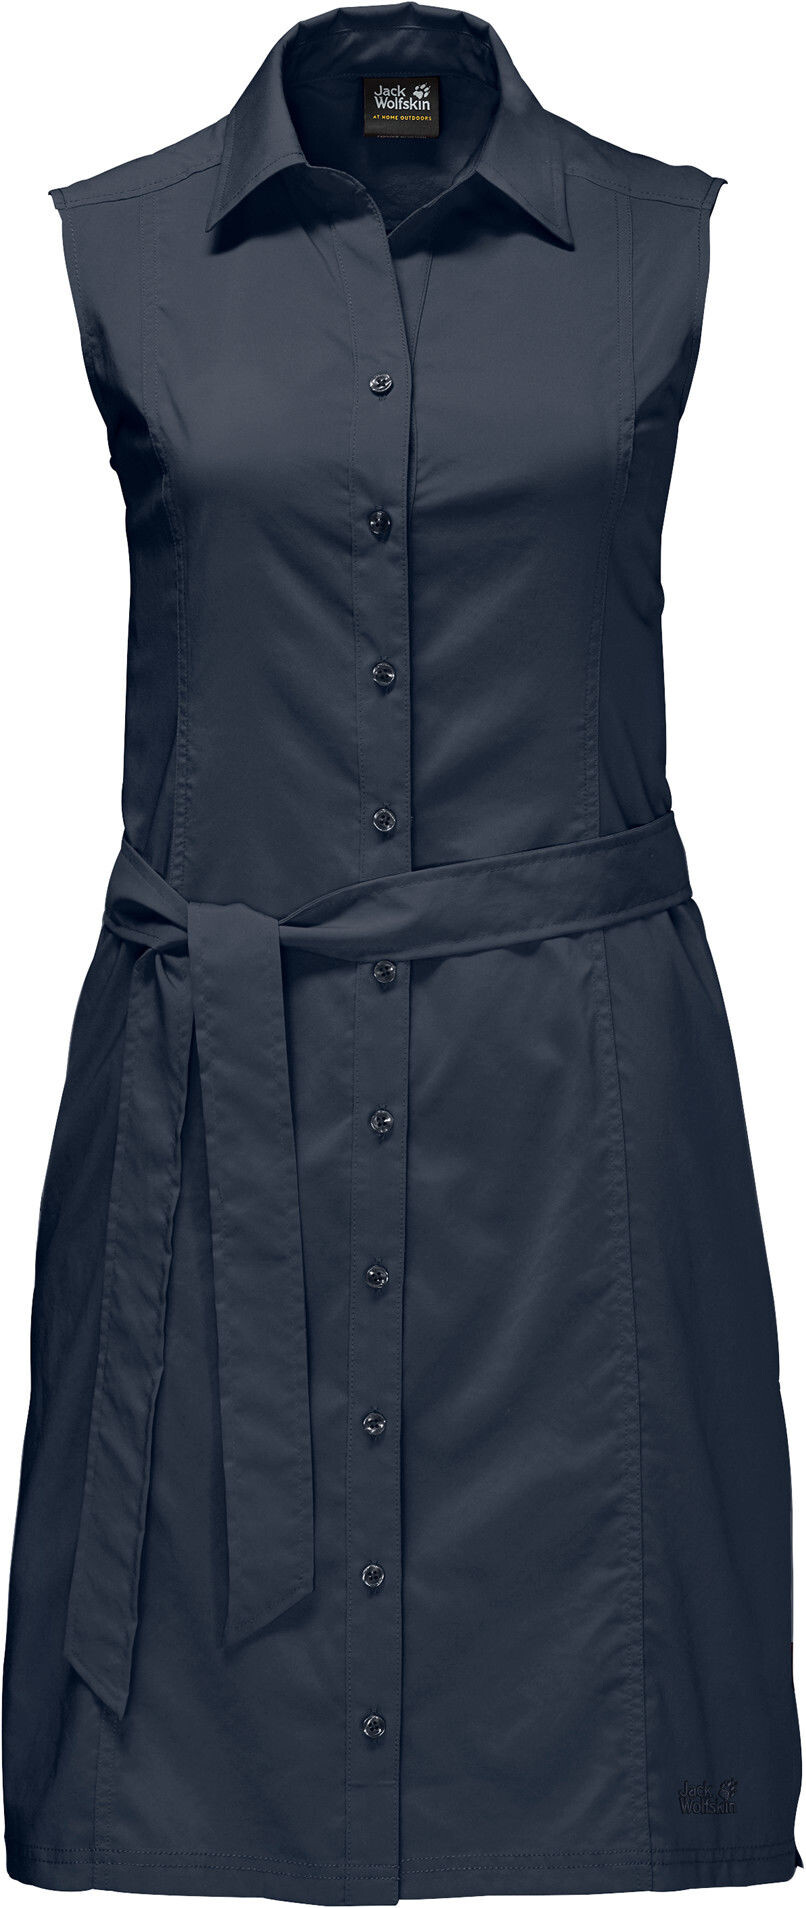 Blue Dress Sonora Jack Wolfskin Women Midnight OZkXiuP